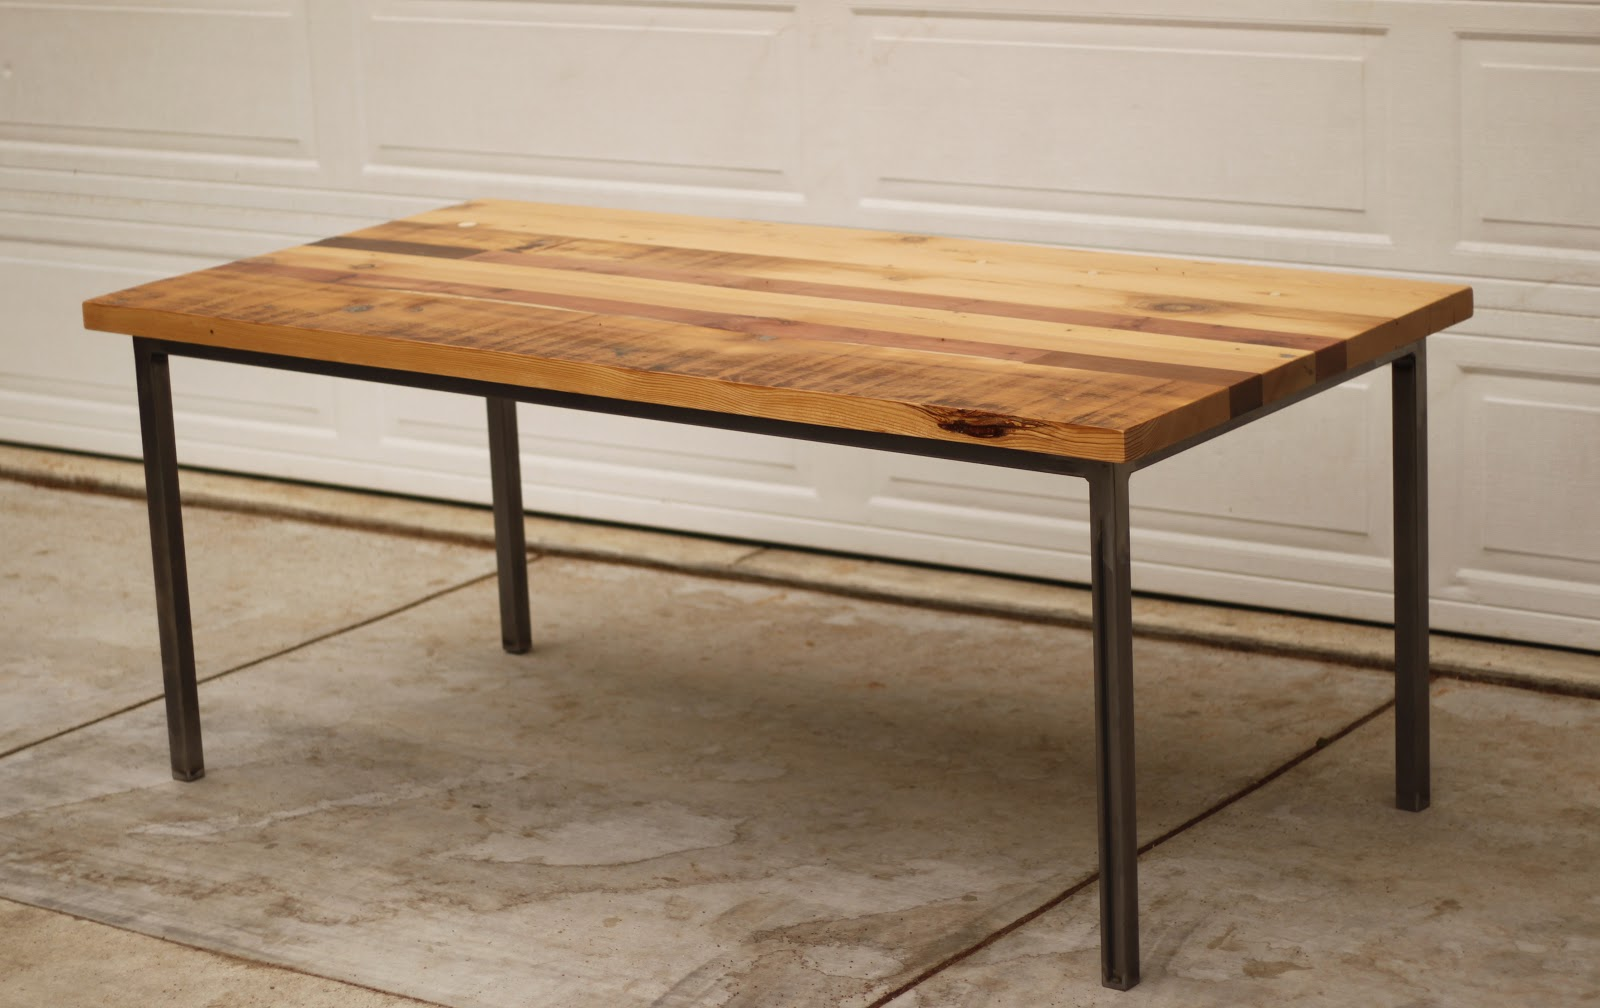 Arbor exchange reclaimed wood furniture patchwork table Wood and steel furniture